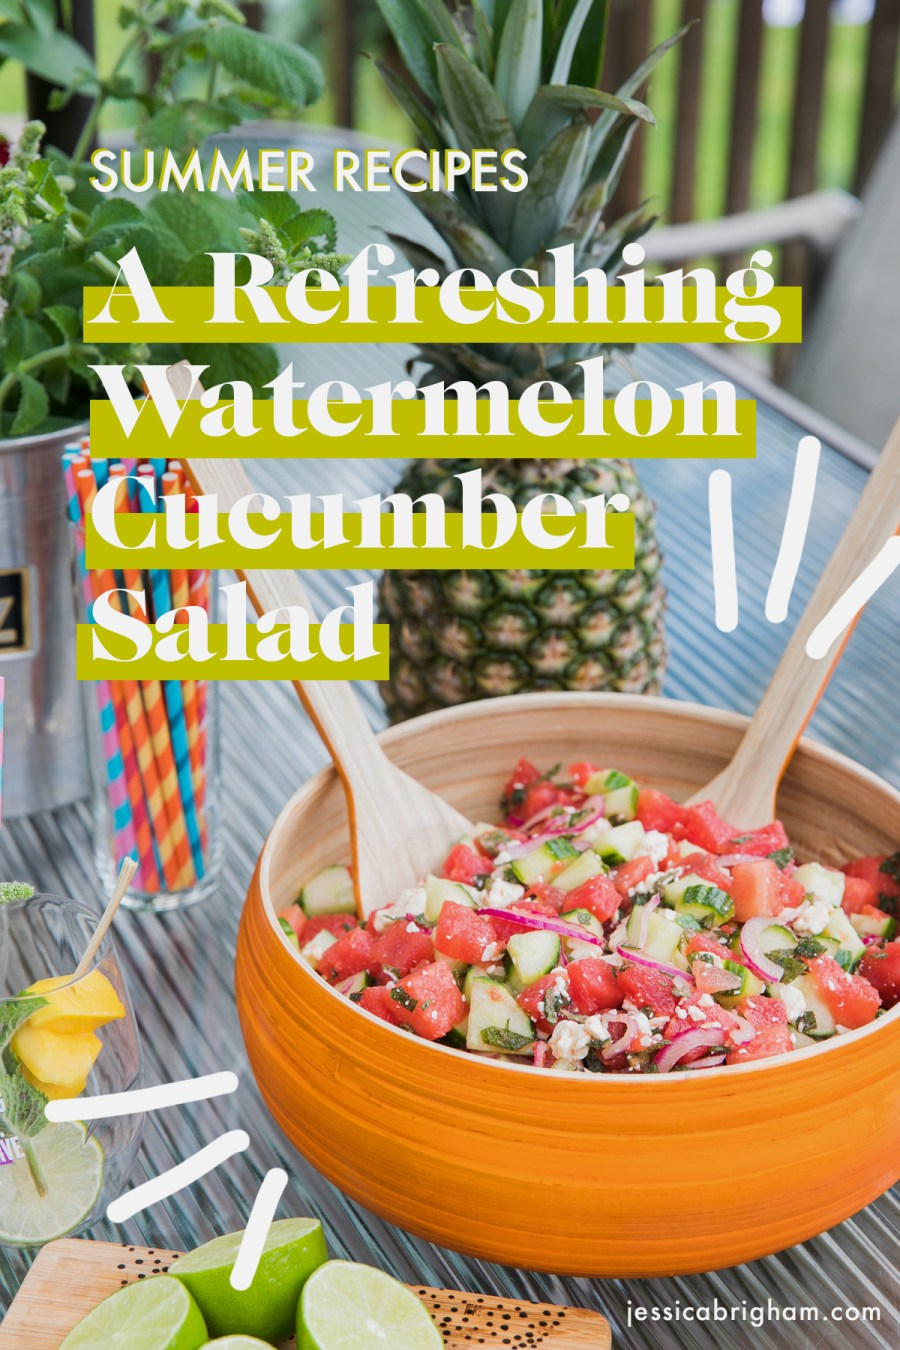 Summer Recipes | Refreshing Watermelon Cucumber Salad | Healthy Summer Recipes | Jessica Brigham | Magazine Ready for Life